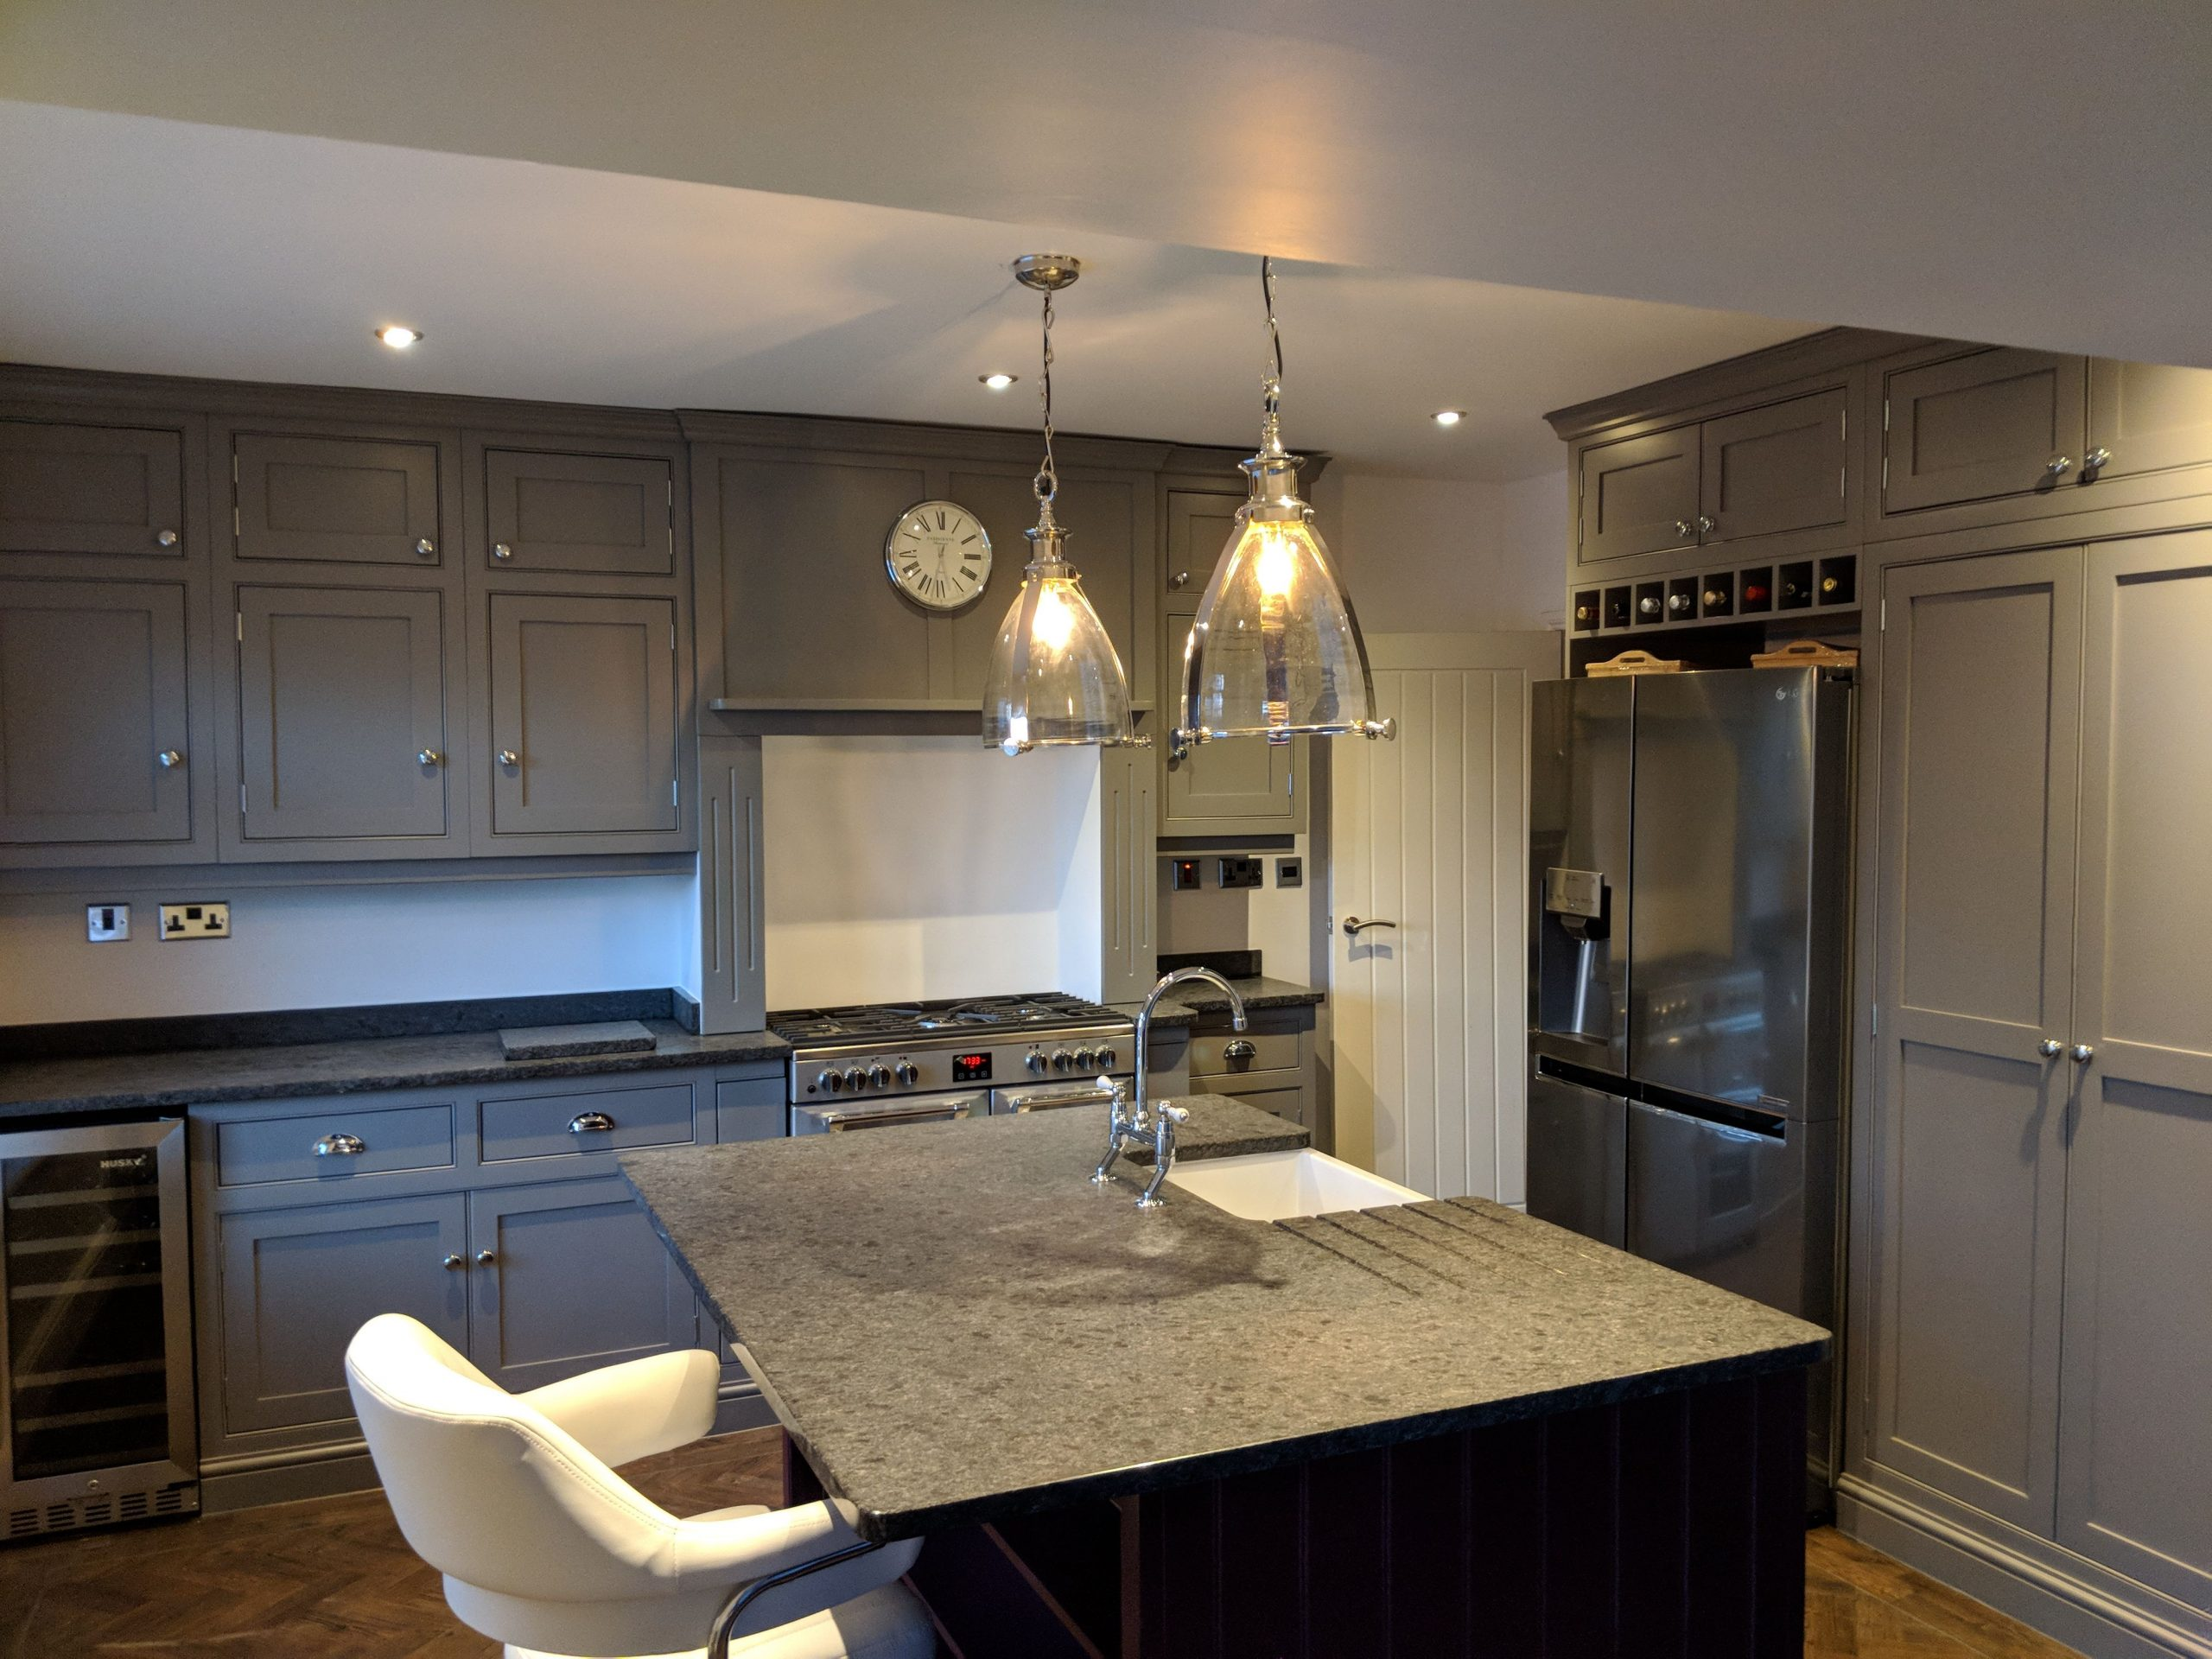 bespoke fitted kitchen fitted in Huddersfield, denby dale